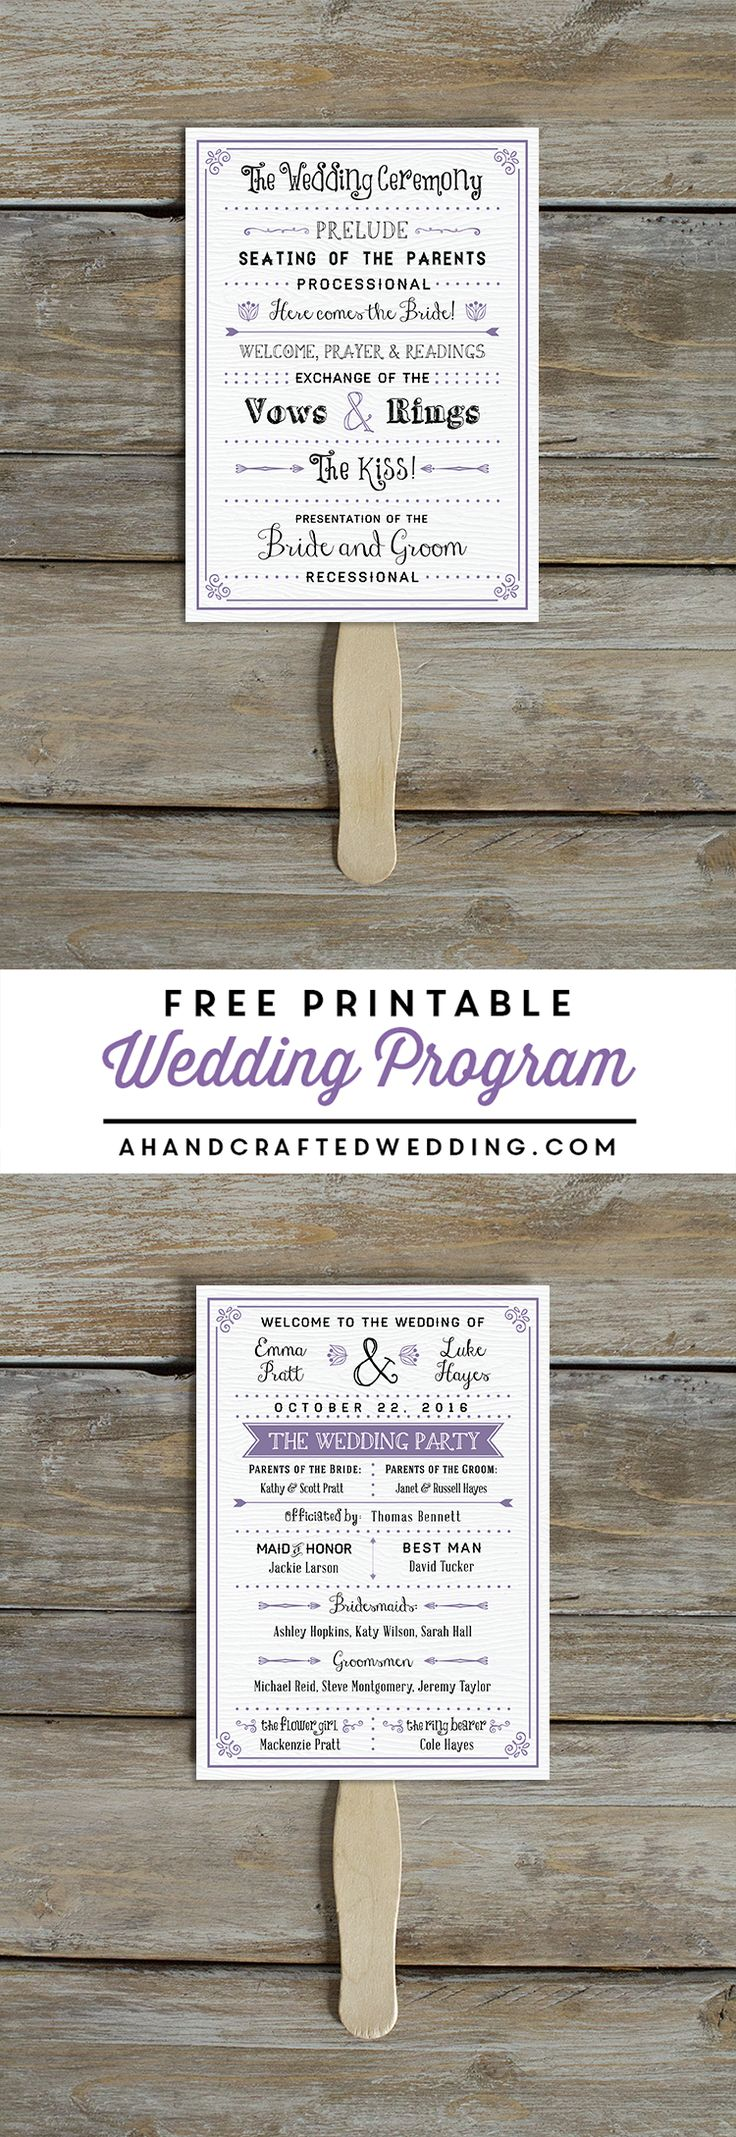 Looking for a printable wedding program? Download this FREE Printable Wedding Program and print as many copies as you would like! MountainModernLife.com